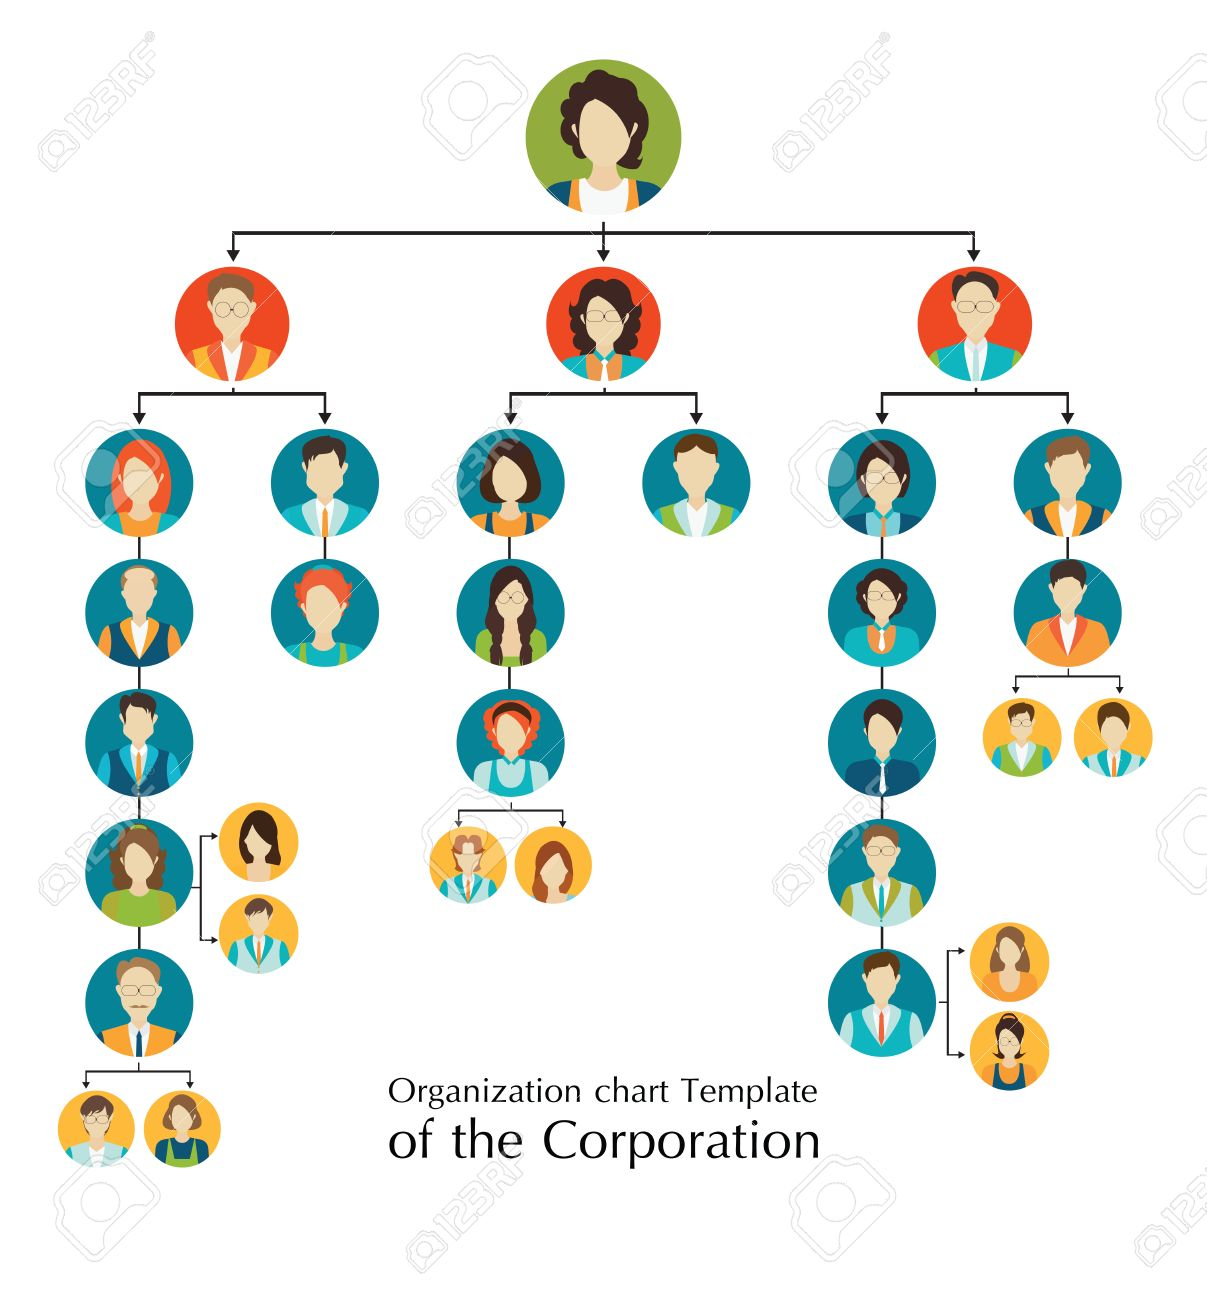 Organizational chart template of the corporation business hierarchy organizational chart template of the corporation business hierarchy people structure character cartoon business people cheaphphosting Image collections